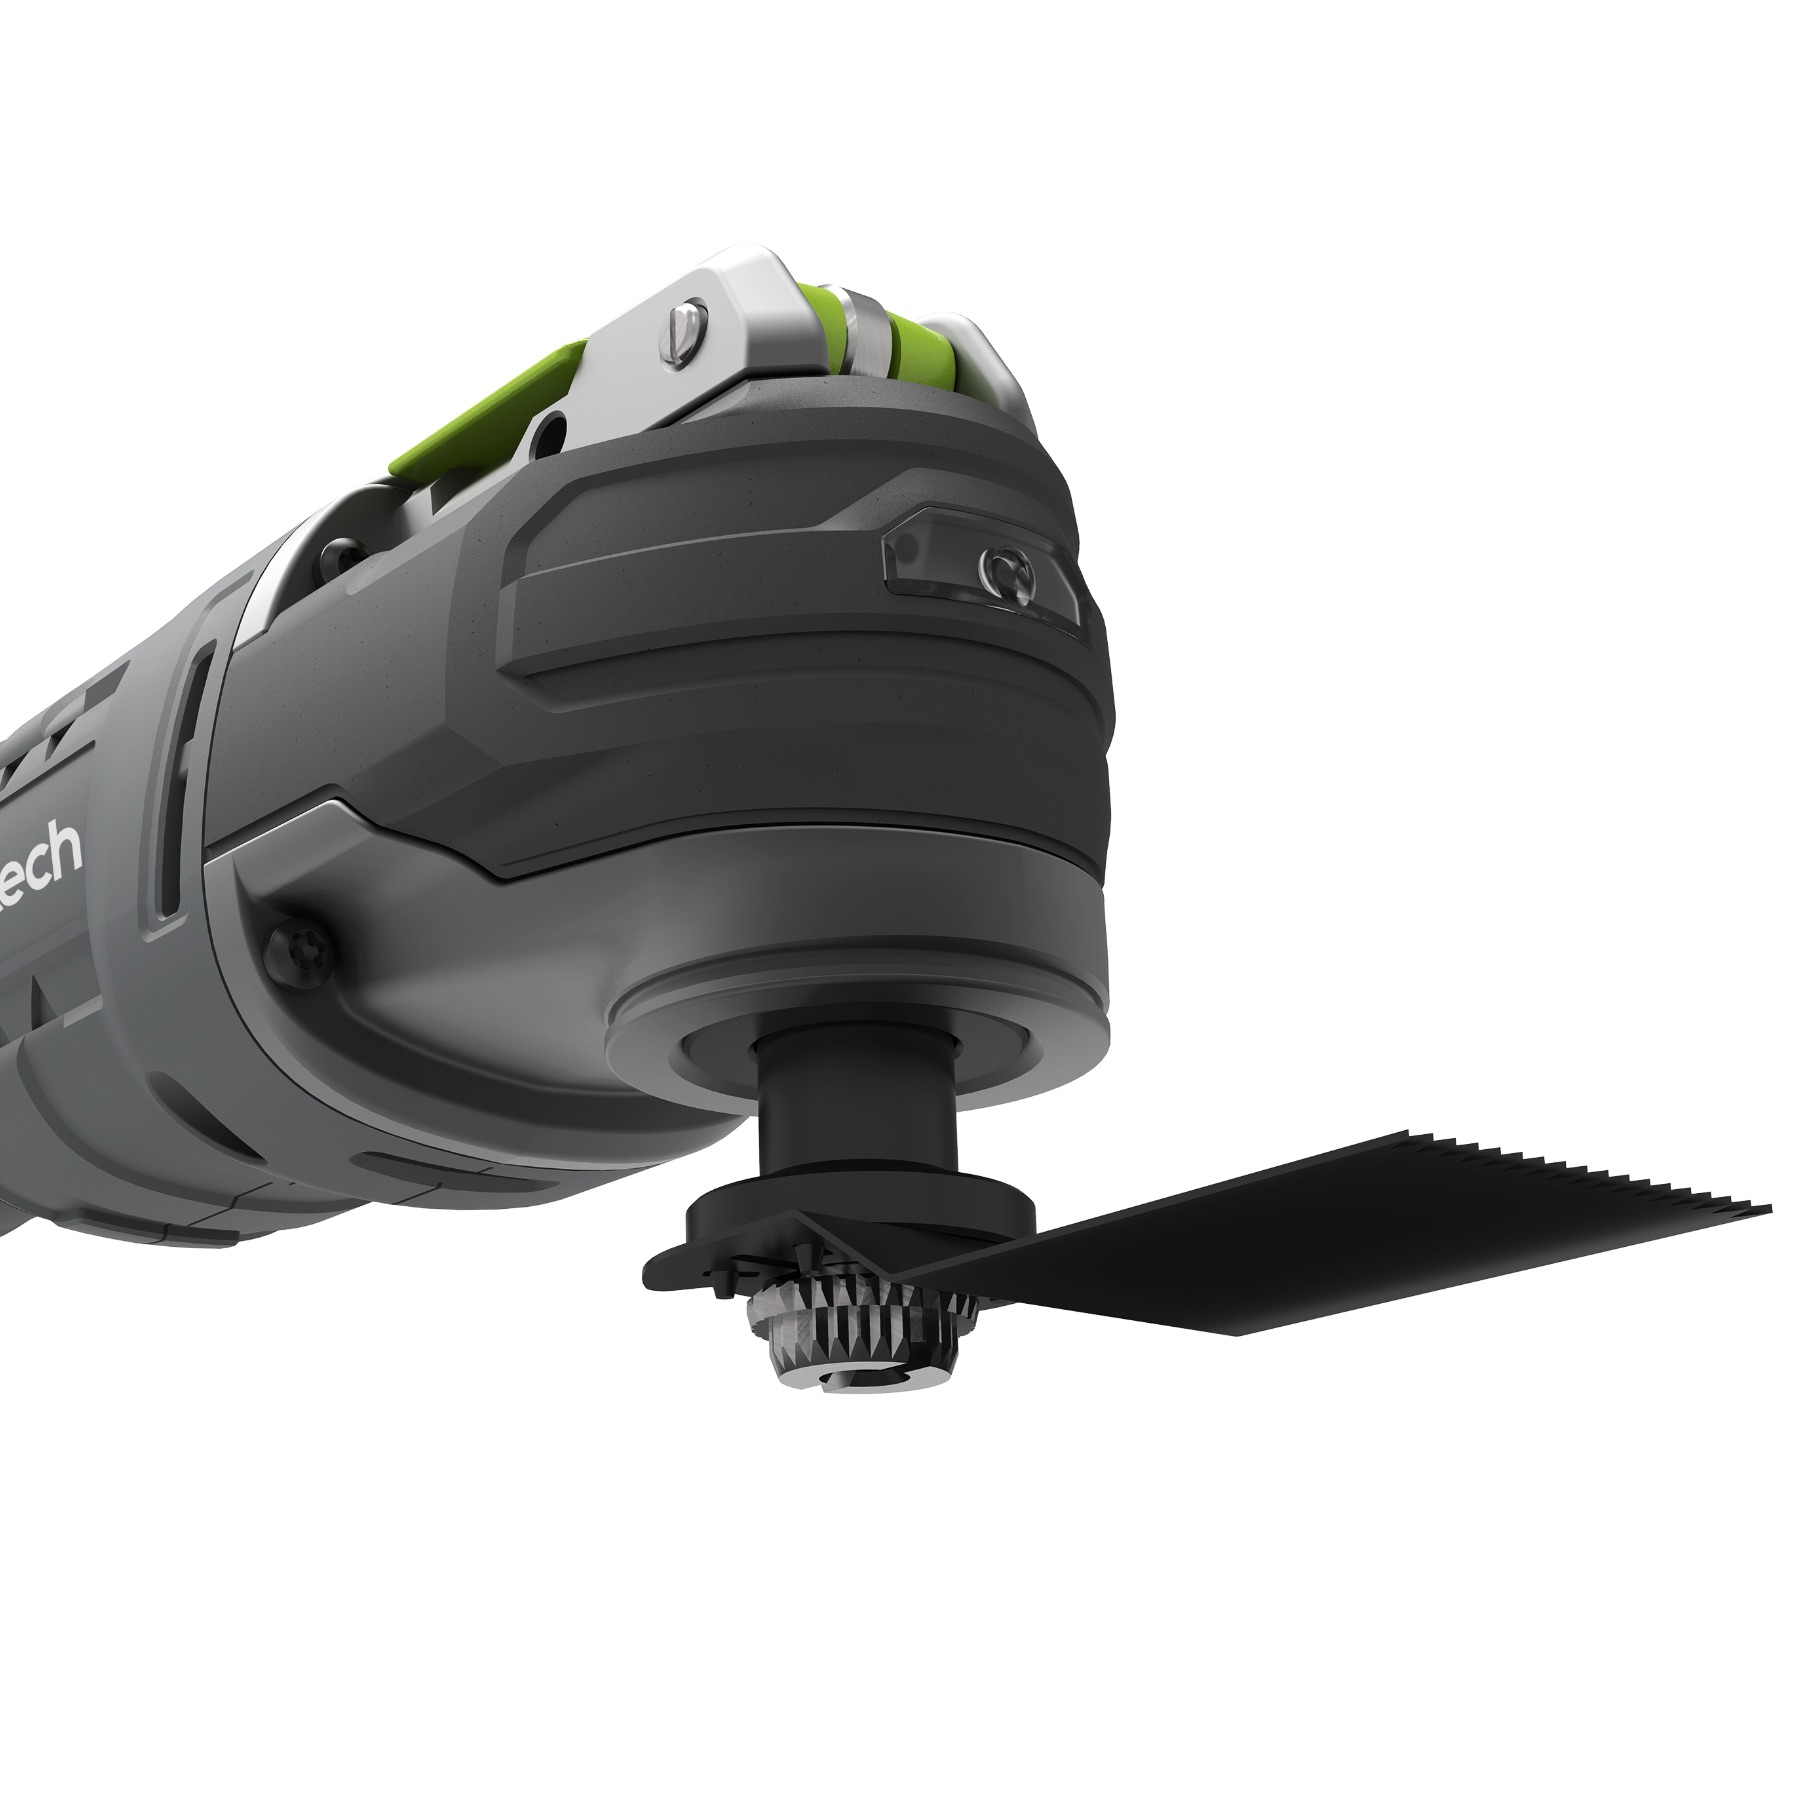 Gtech 20V Cordless Multi-Tool Review